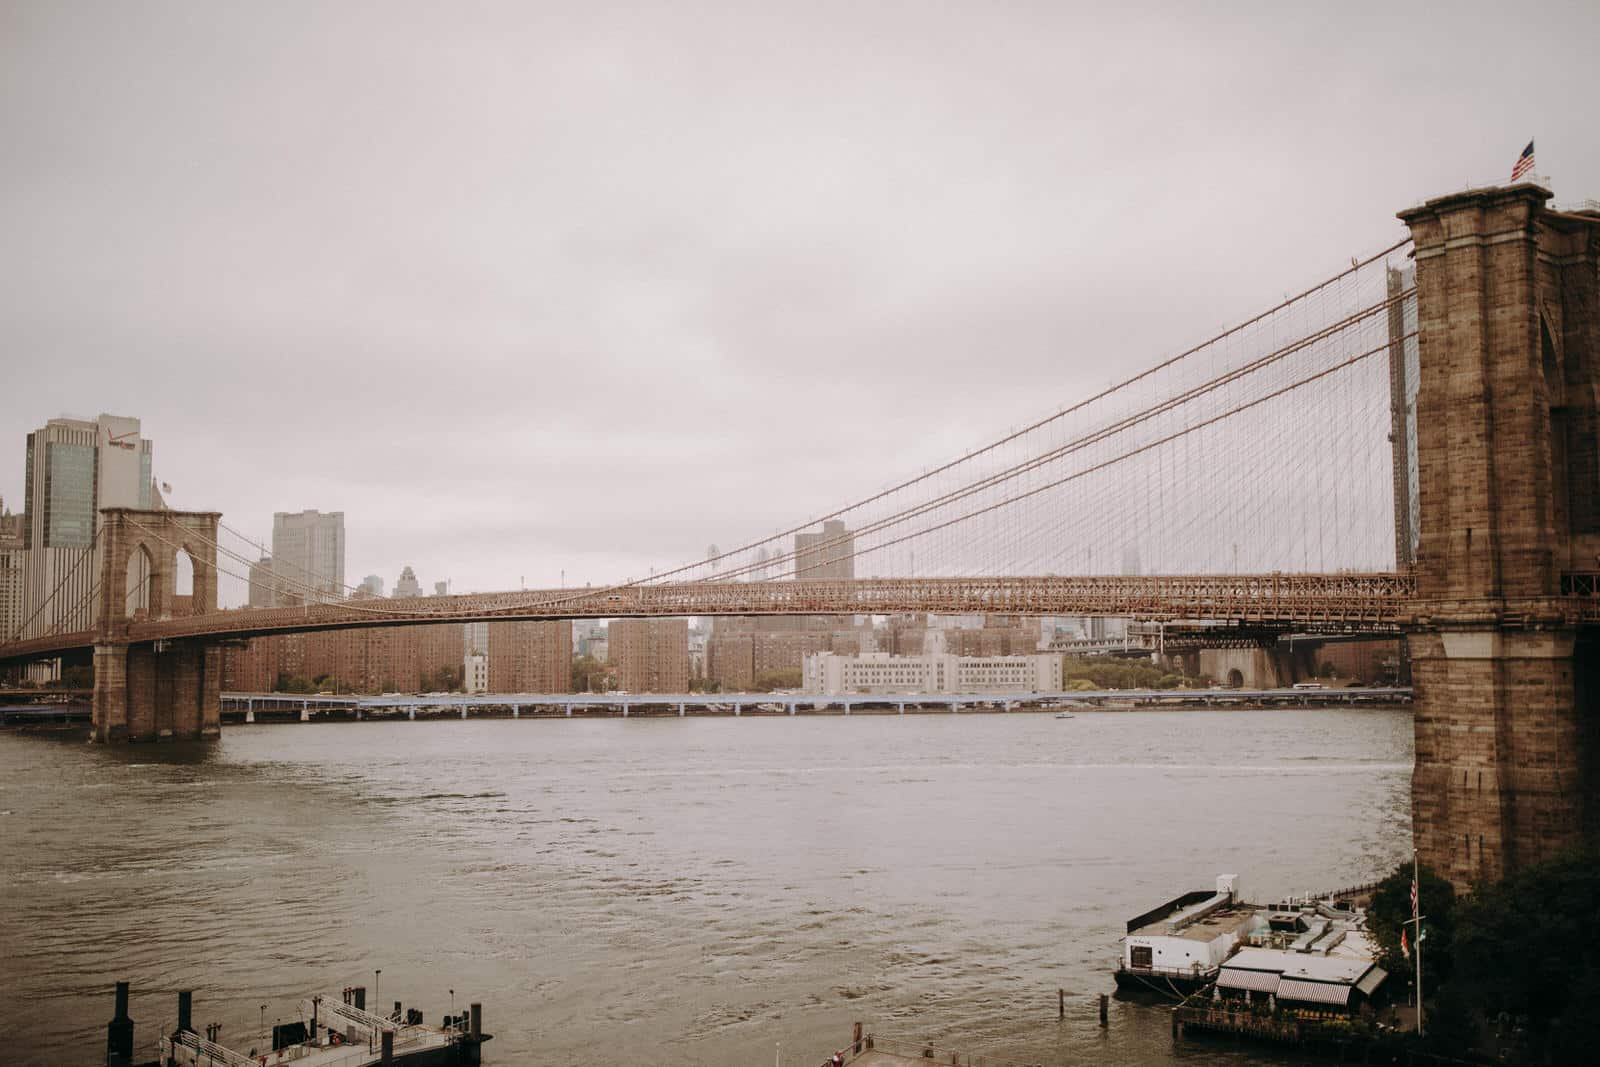 The wedding locations features a view of the Brooklyn Bridge.